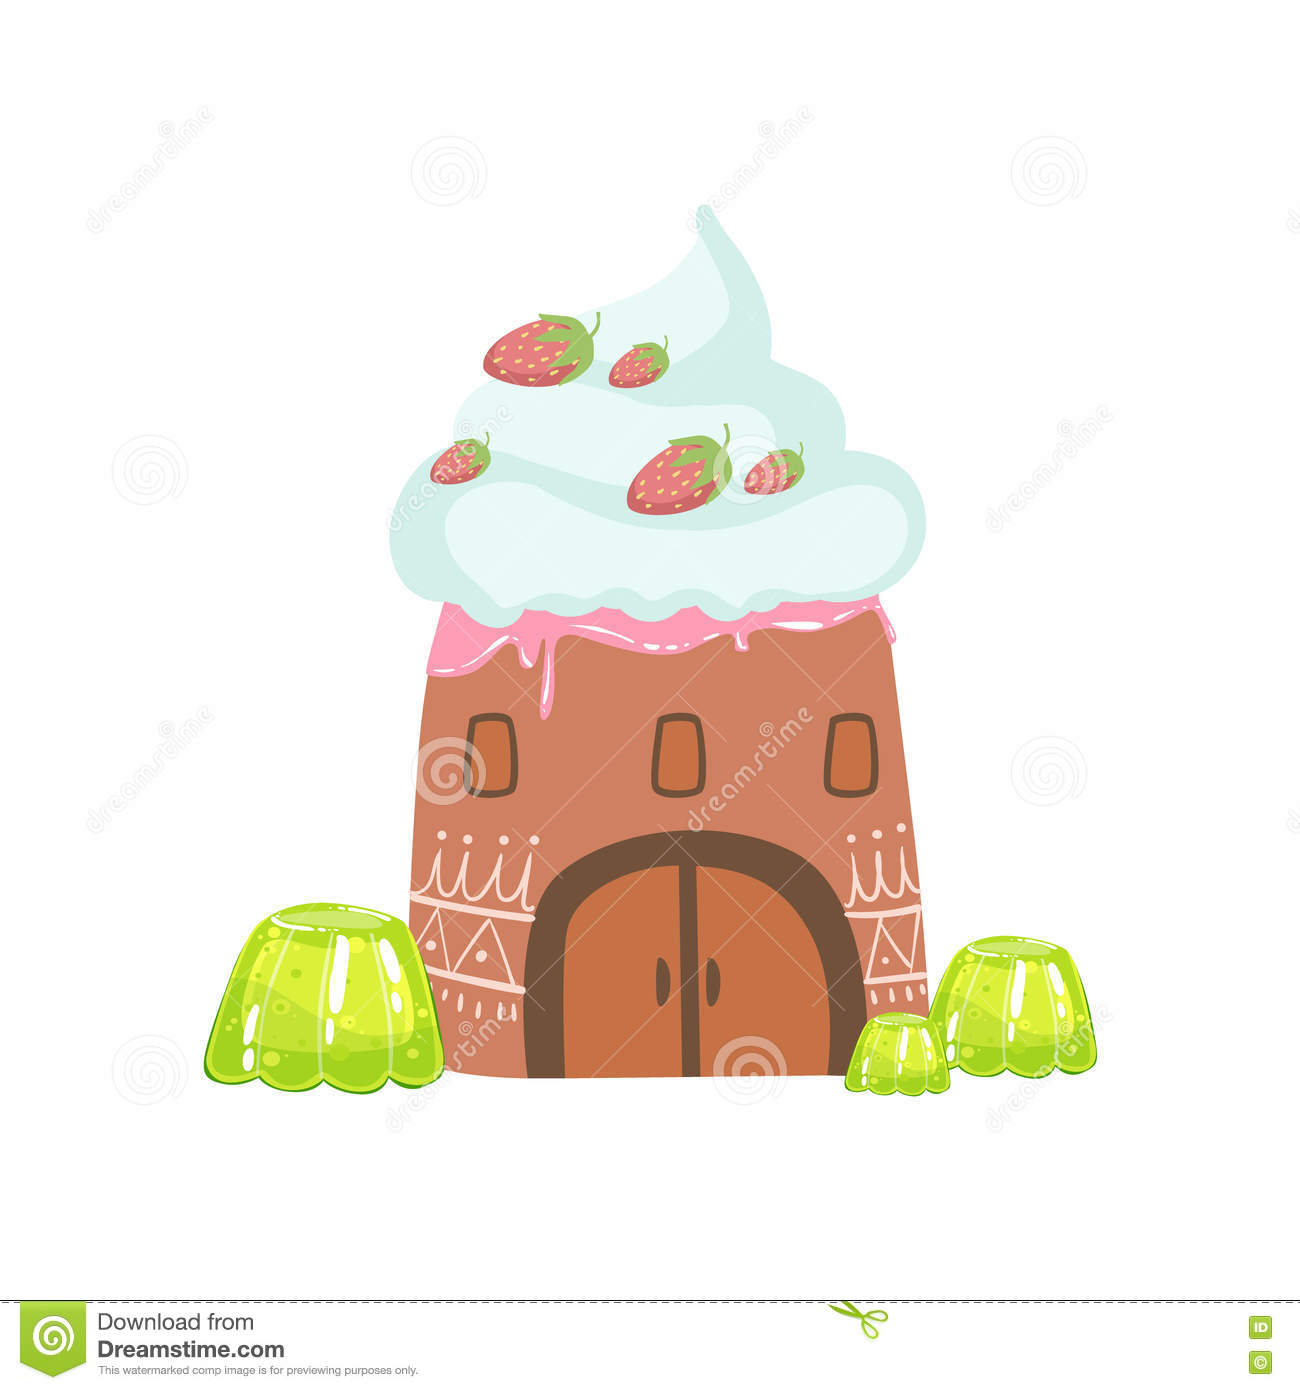 Tower Made Of Candy, Whipped Cream And Jelly Fantasy Candy Land Sweet Landscape Element